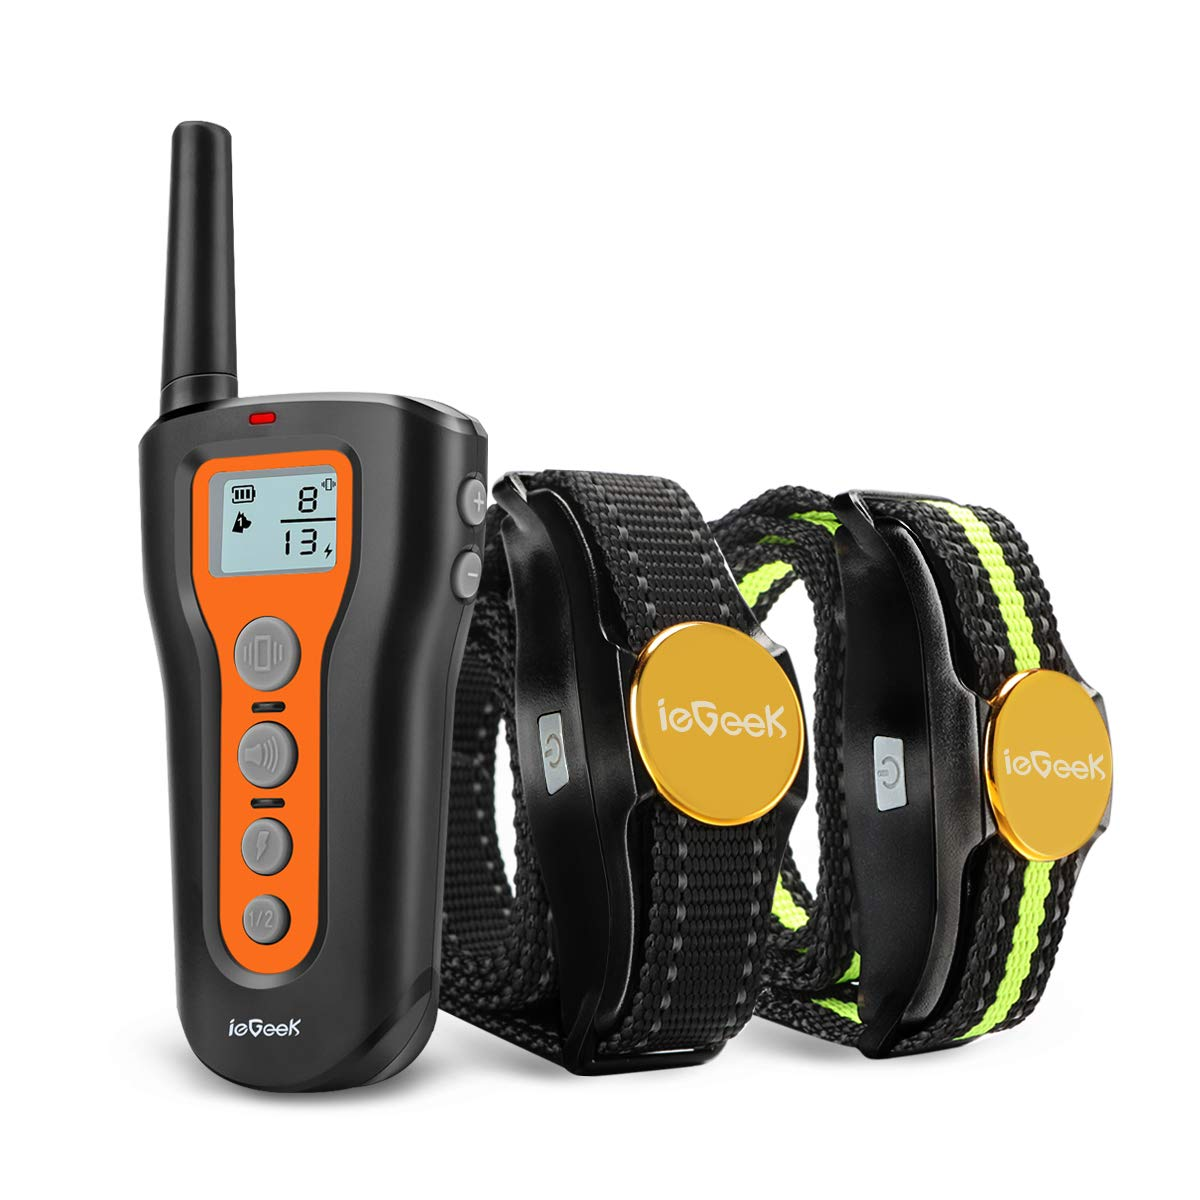 ieGeek Dog Training Collar for 2 Dogs Shock Collars with Remote Up to 1000ft, Upgraded Rechargeable Waterproof Electric Sport Dog E-Collar with Beep, Vibration and Shock for Small Medium Large Dogs